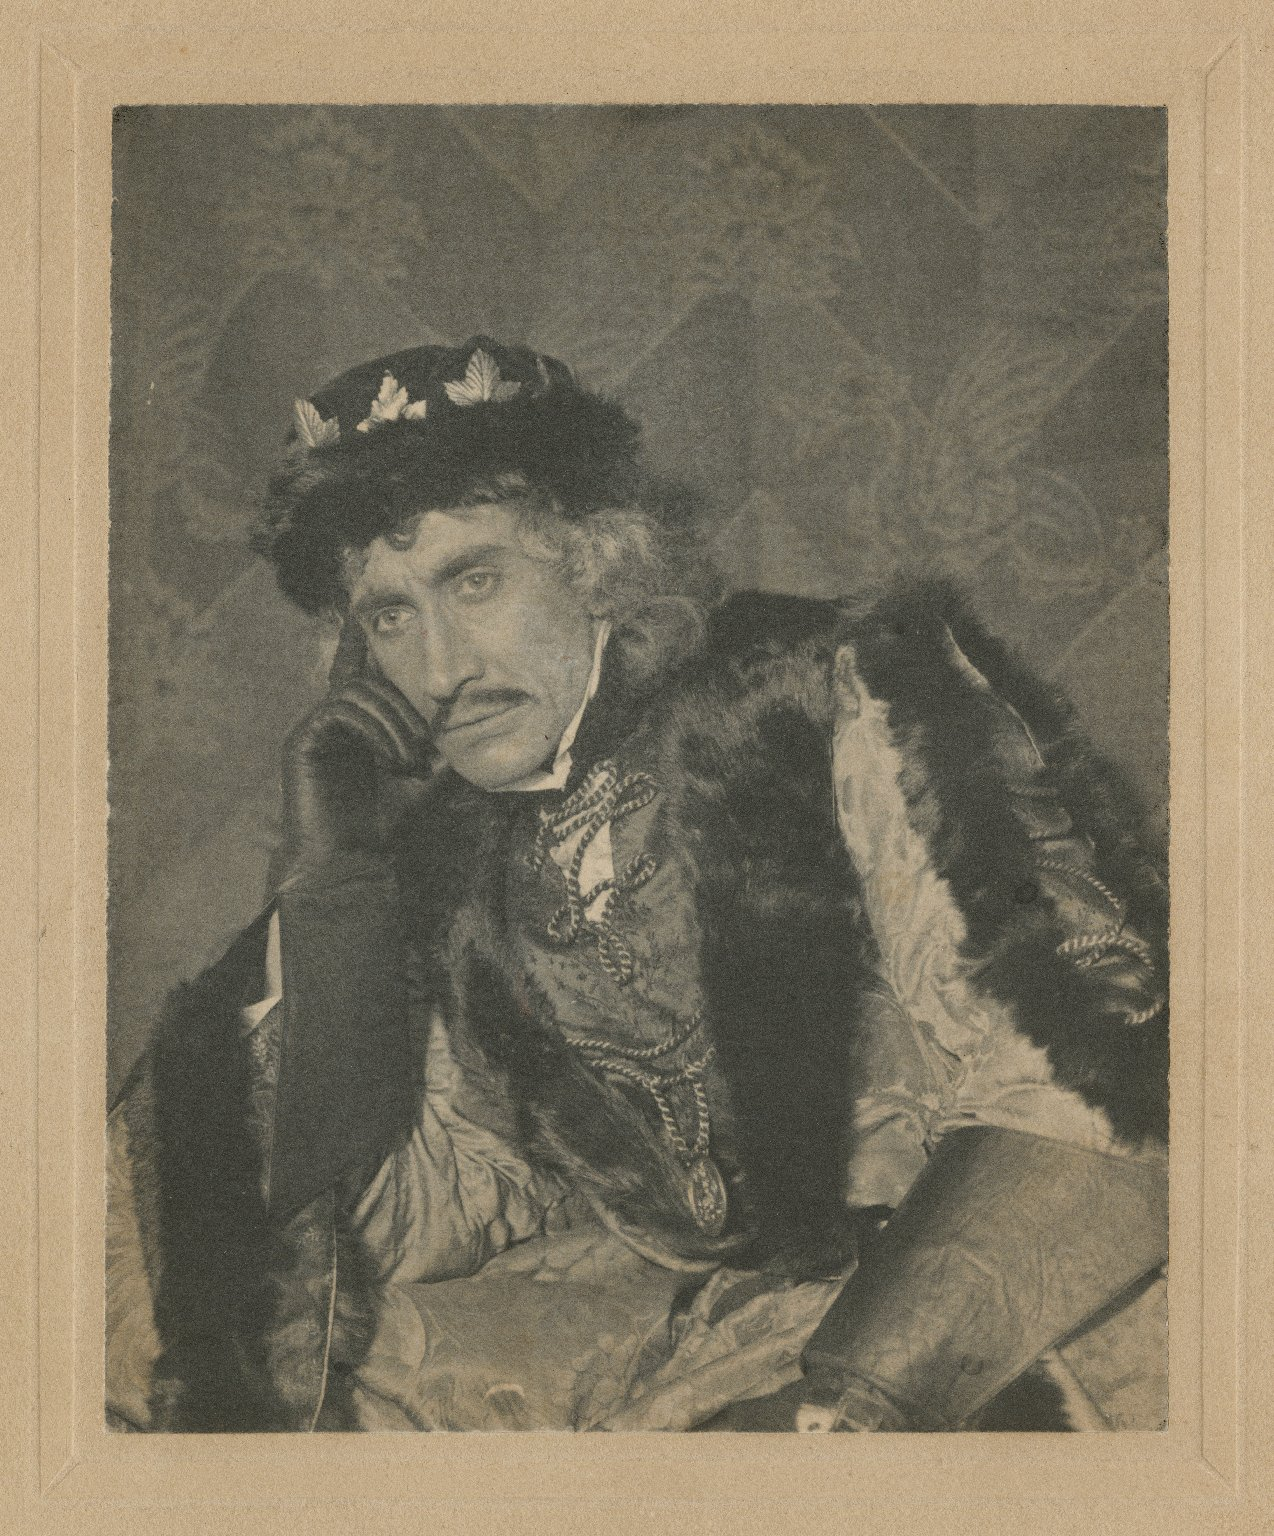 """Sidney Herbert as Duke Frederic in """"As you like it"""" [by Shakespeare] 1896 (Augustin Daly's company, Rehan as Rosalind, etc.) [graphic]."""